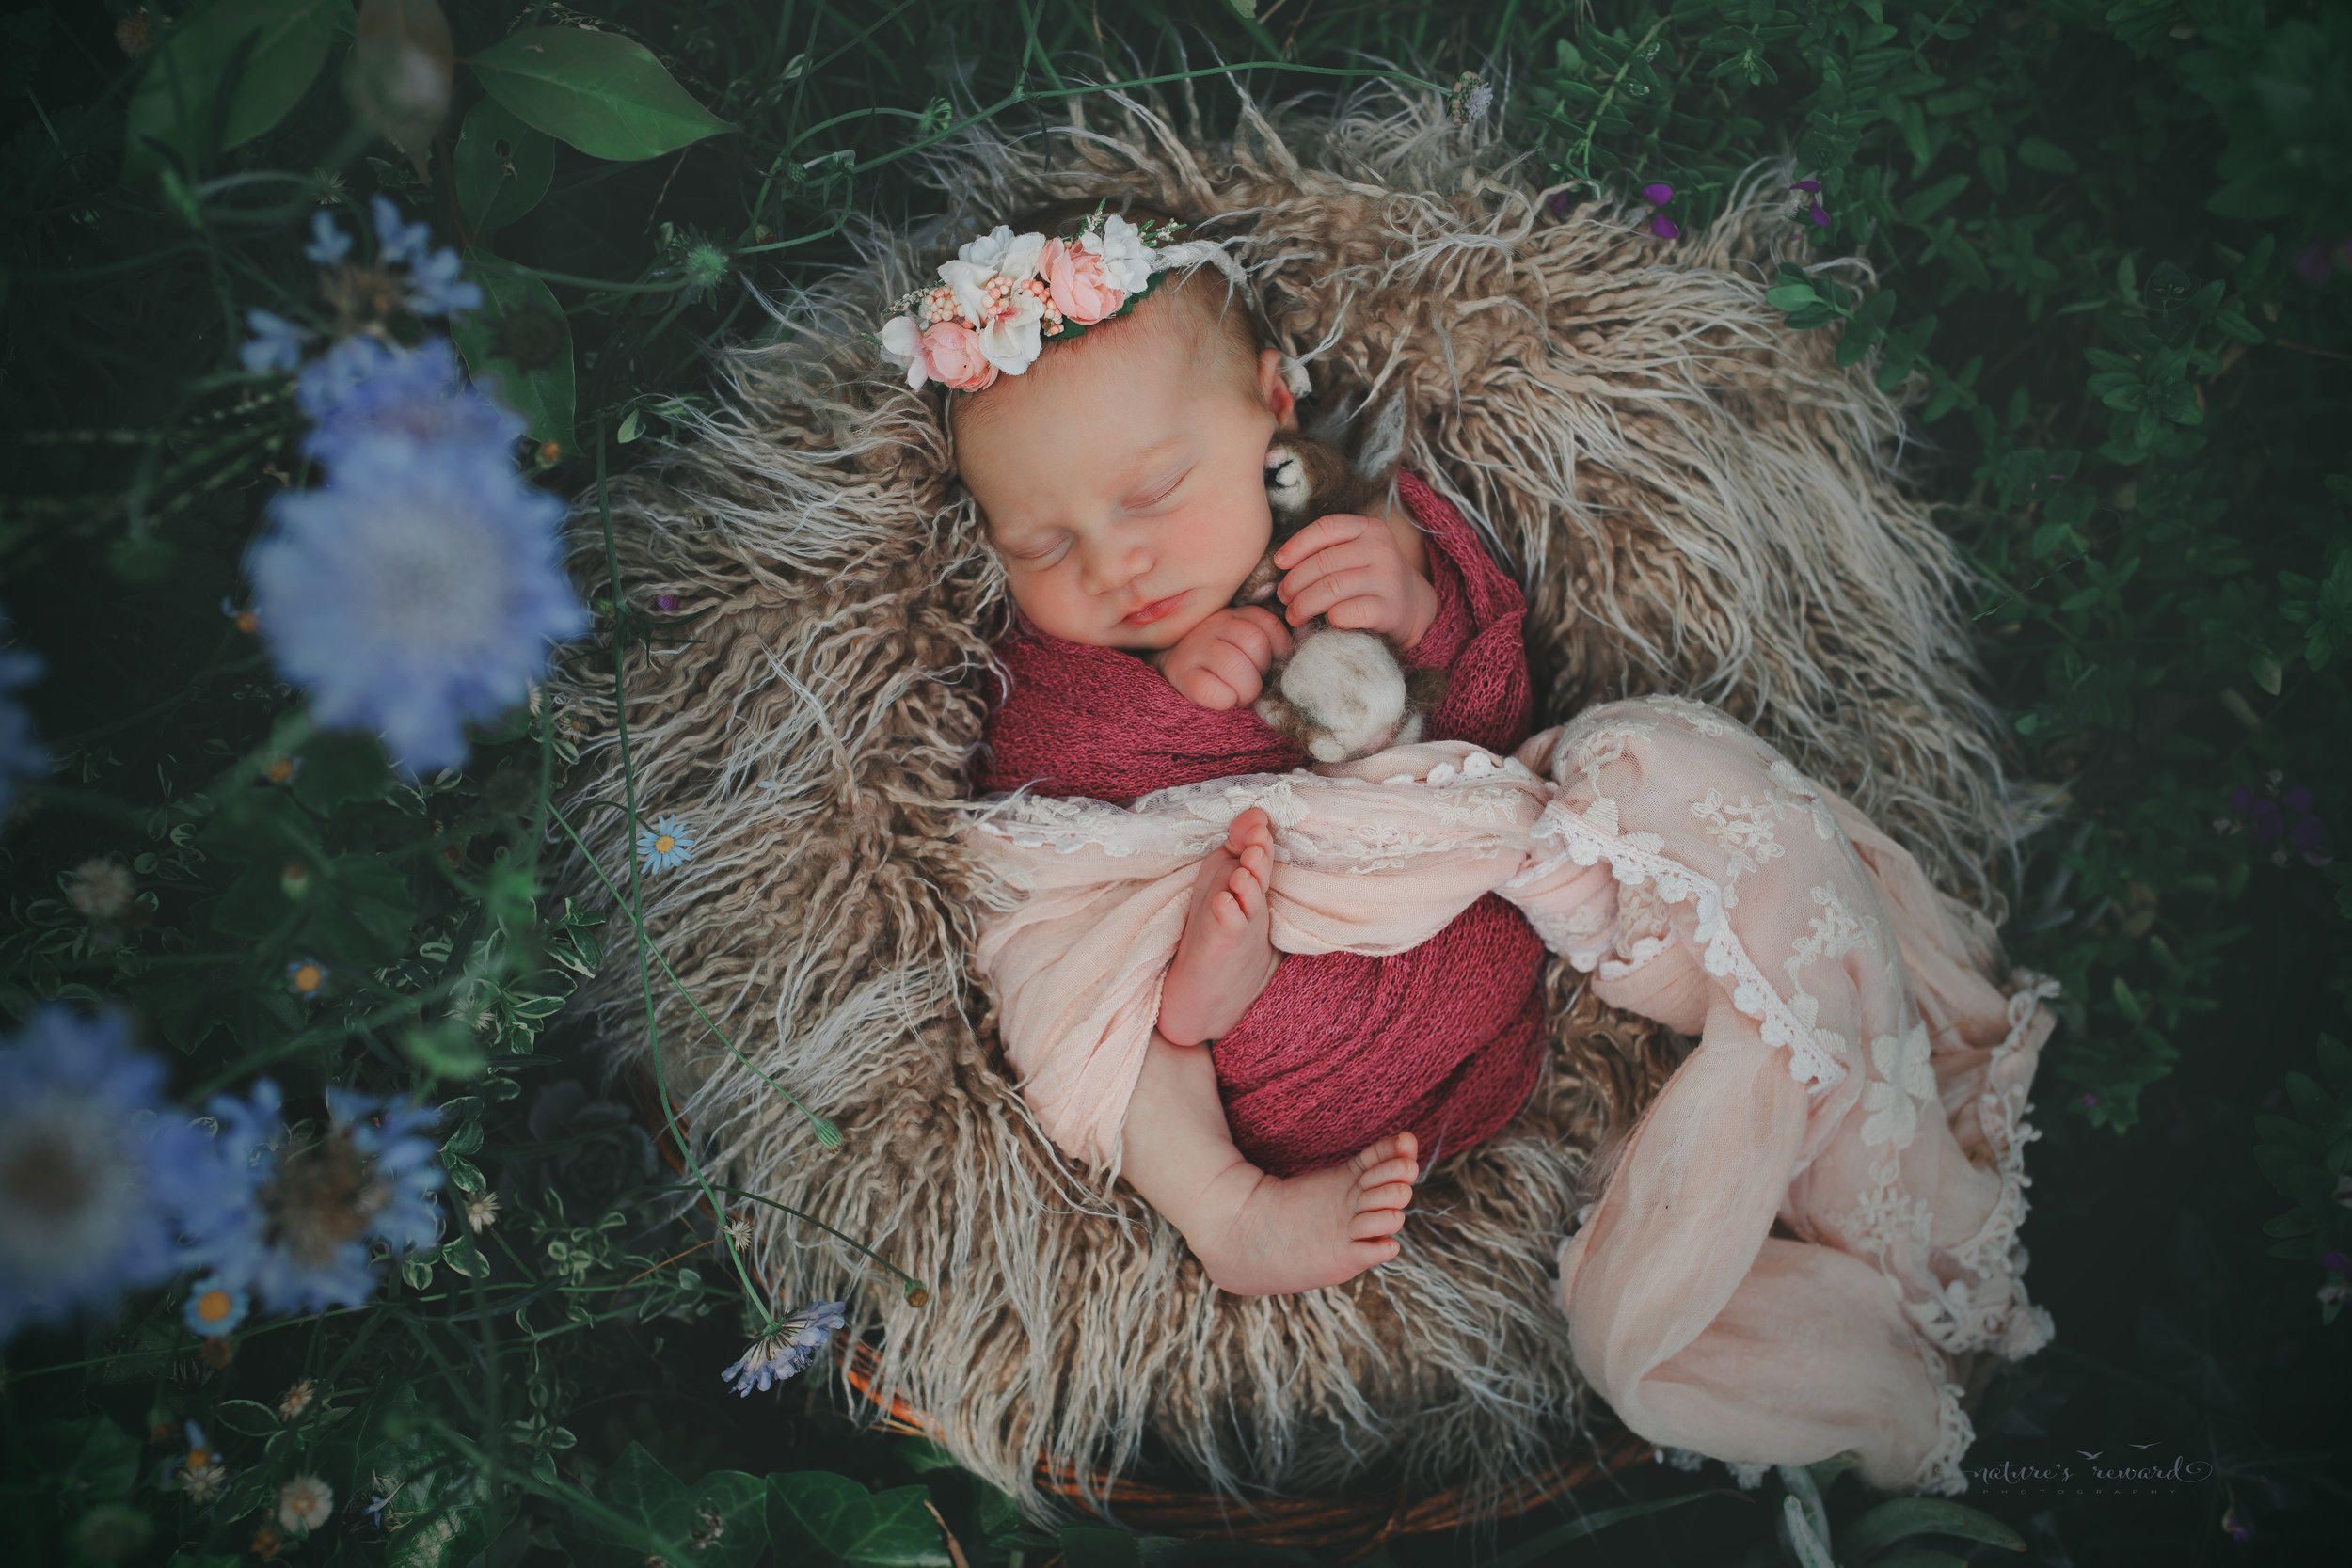 Newborn baby girl in a succulent and flower garden on a bed of fur wearing shade of pink, a baby portrait by Nature's Reward Photography